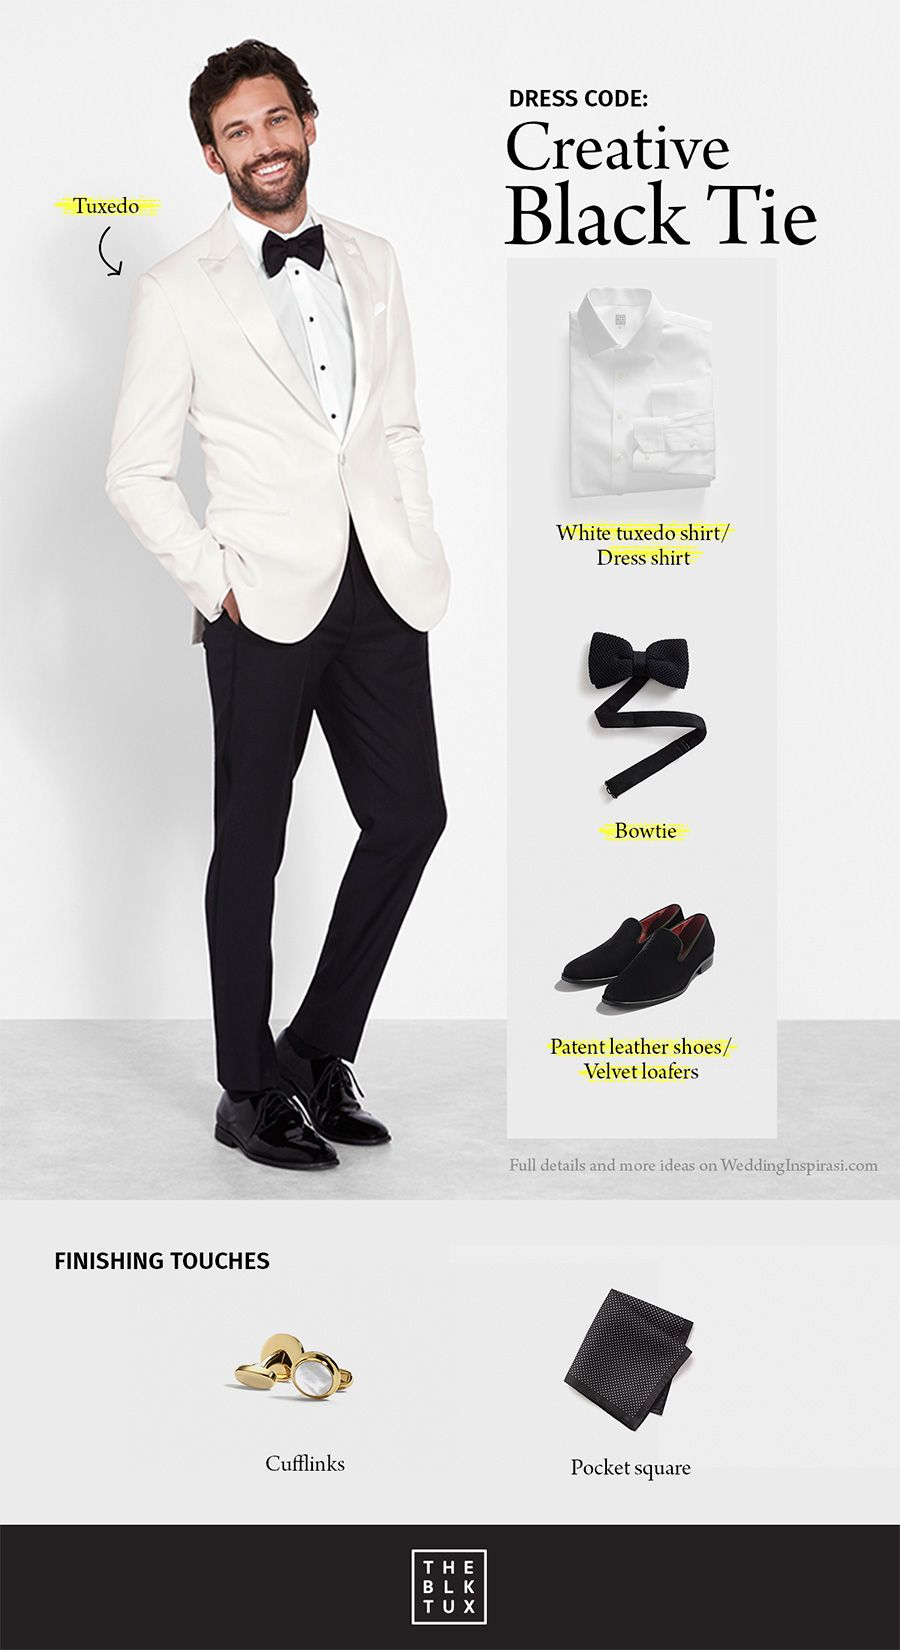 fe06ebad6bae the black tux wedding dress code creative black tie modern style suit  tuxedo rental service -- Decoding Dress Codes  Get Smart with The Black Tux